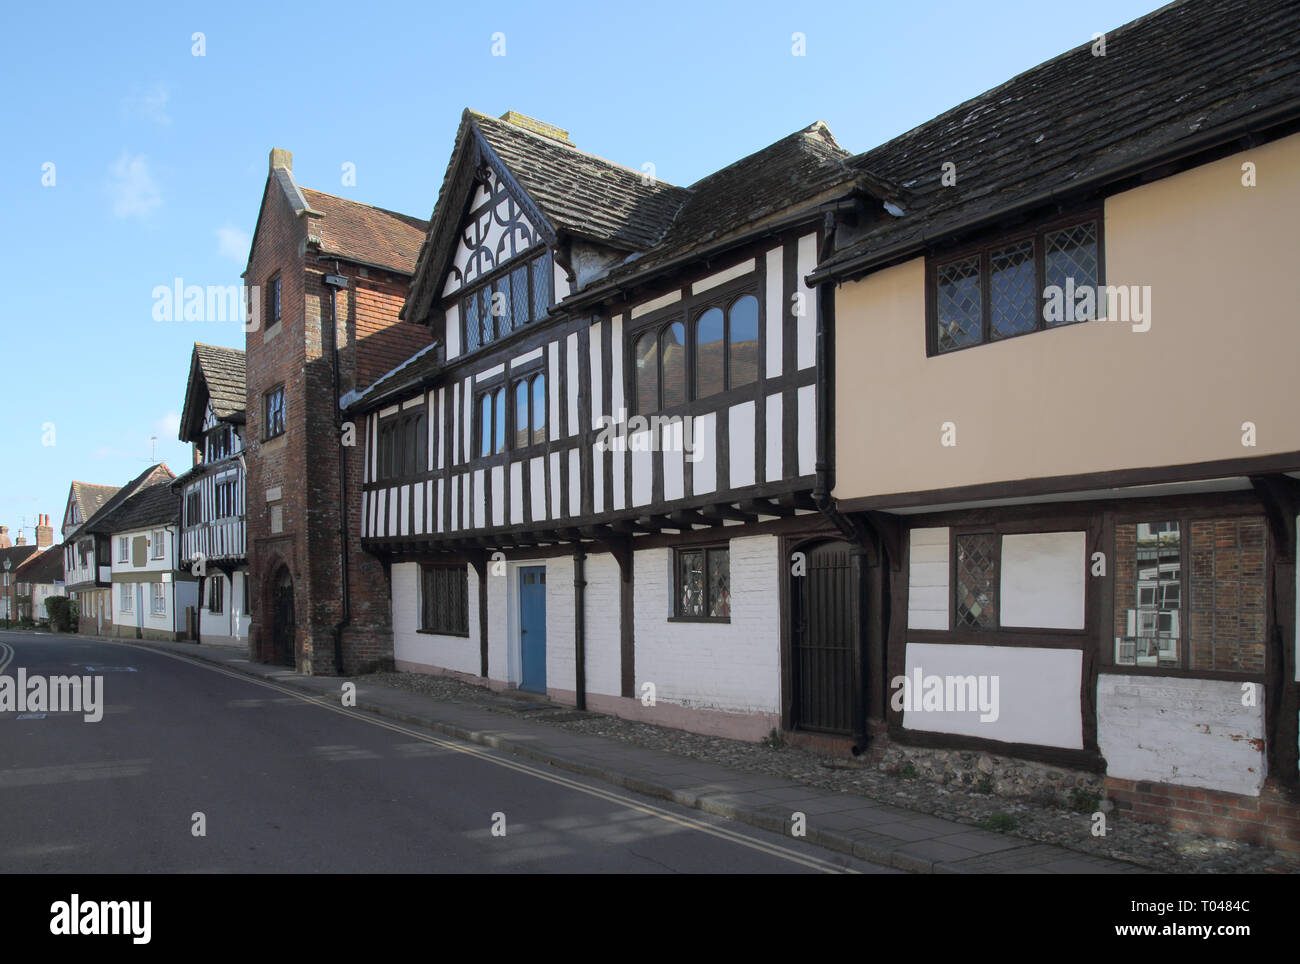 the old grammar school and old cottages  in church street in the small west sussex town of steyning - Stock Image